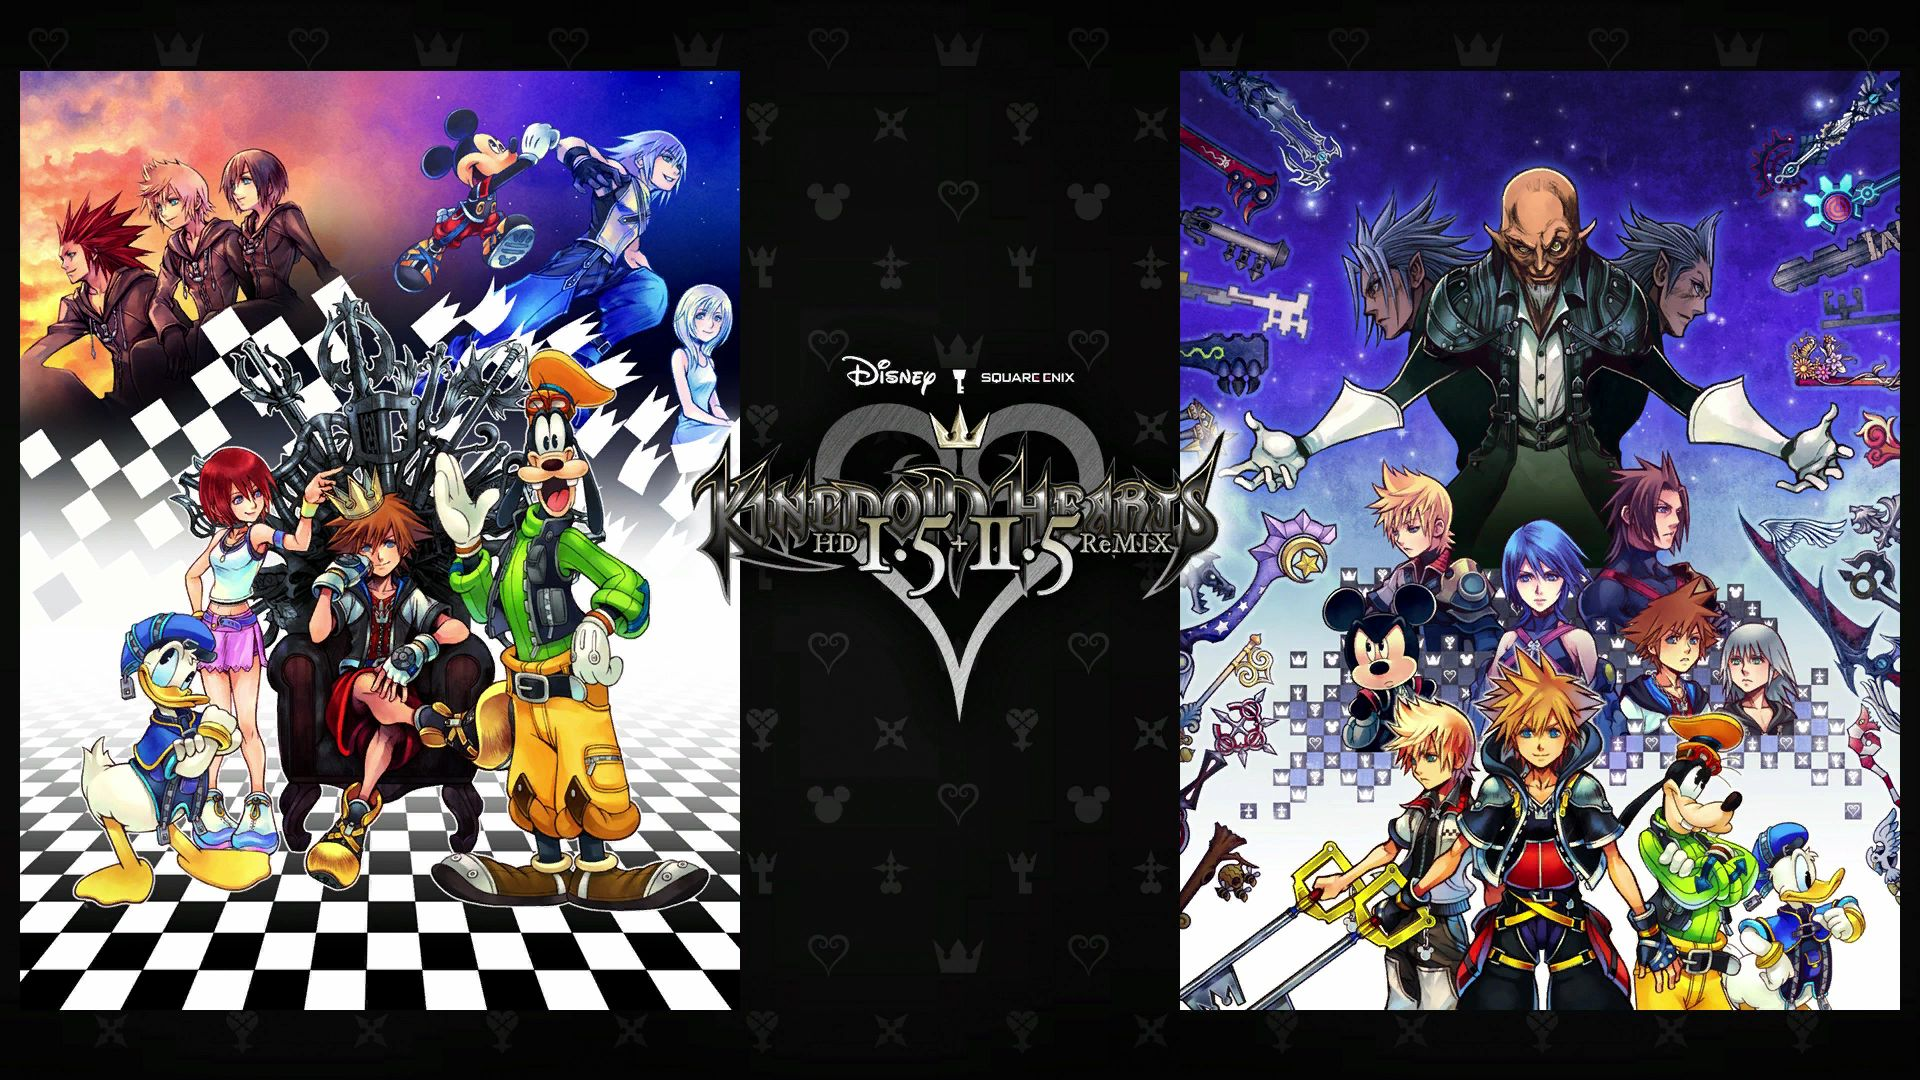 Kingdom Hearts I.5 + II.5 HD ReMIX